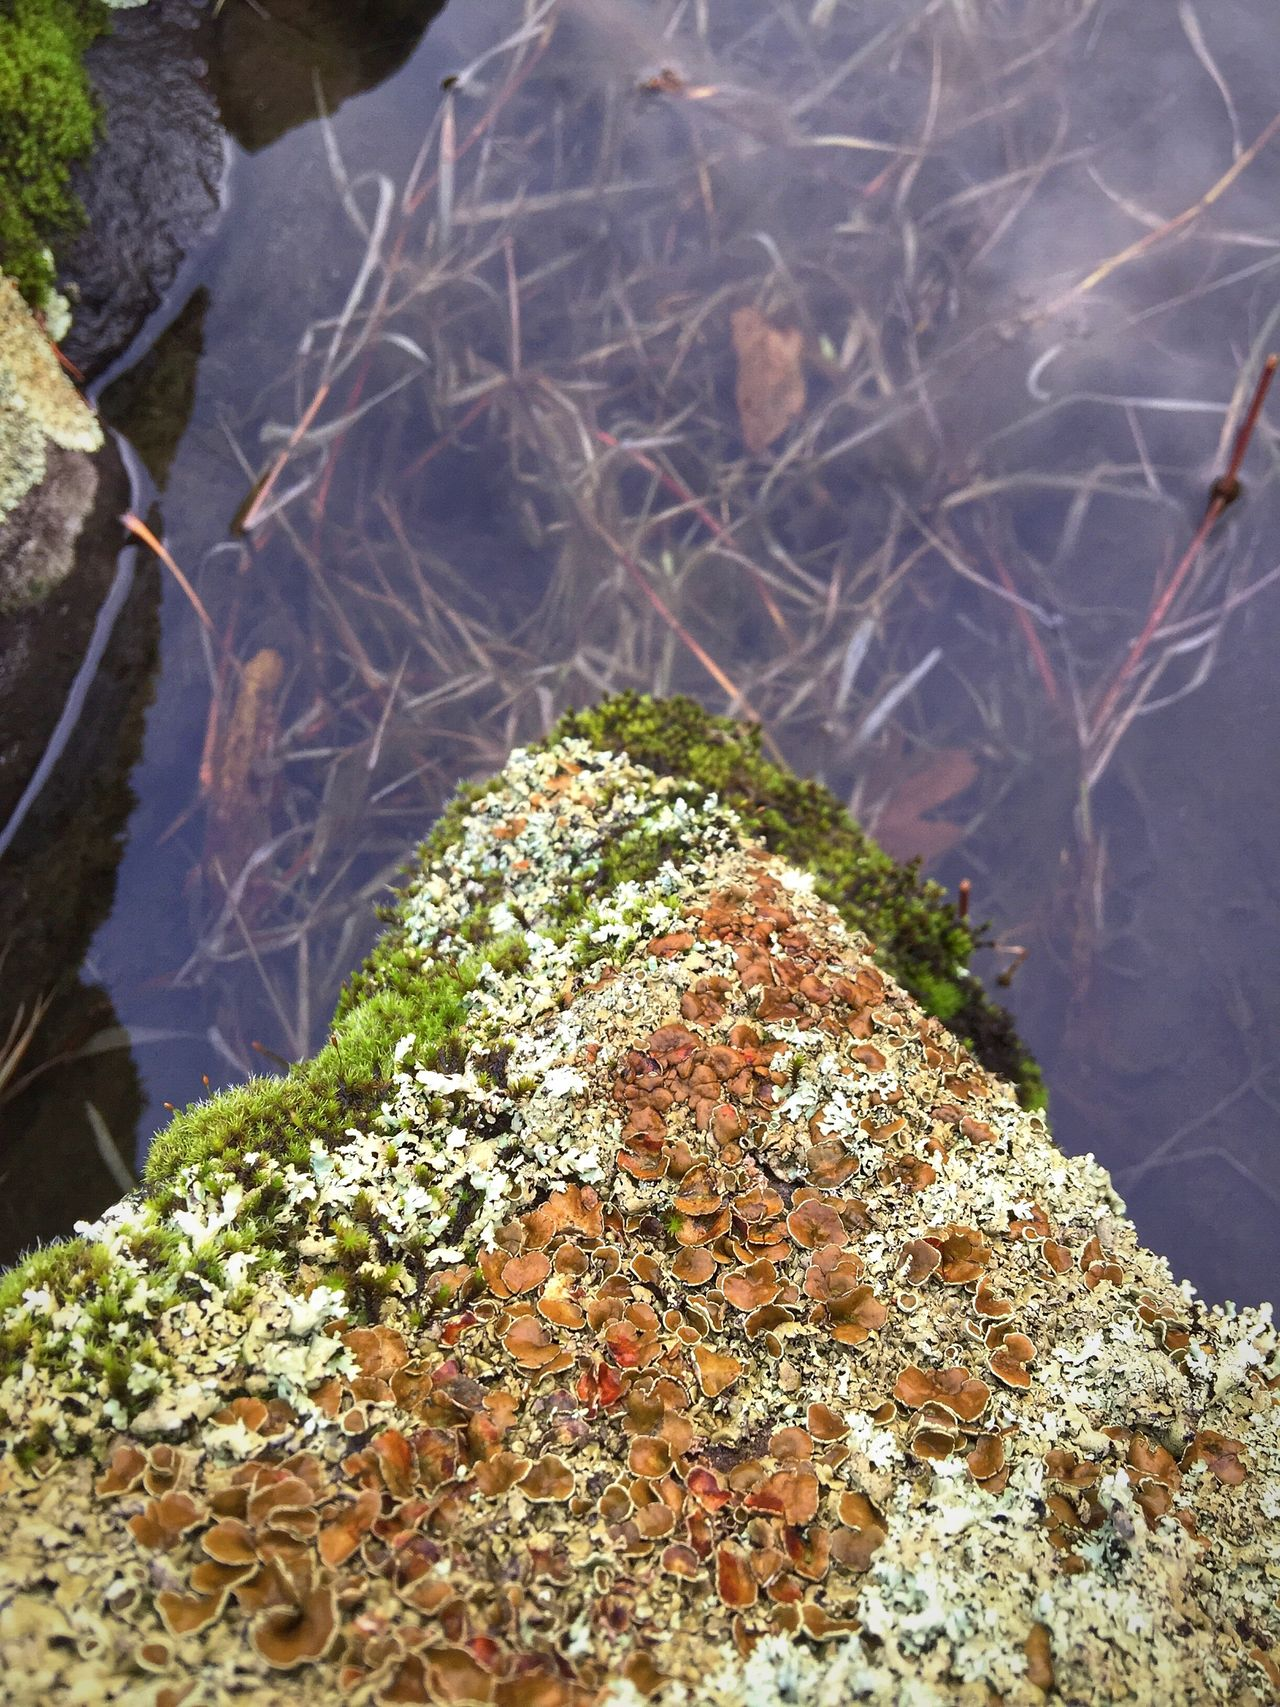 Water Outdoors Close-up Growth Beauty In Nature Rock Formation Weathered Layers And Textures Abstract Nature Shapes In Nature  Perspective Views Scenic Natural Condition Moss & Lichen Abstractions Backgrounds Textured  Tranquil Scene Scenics View